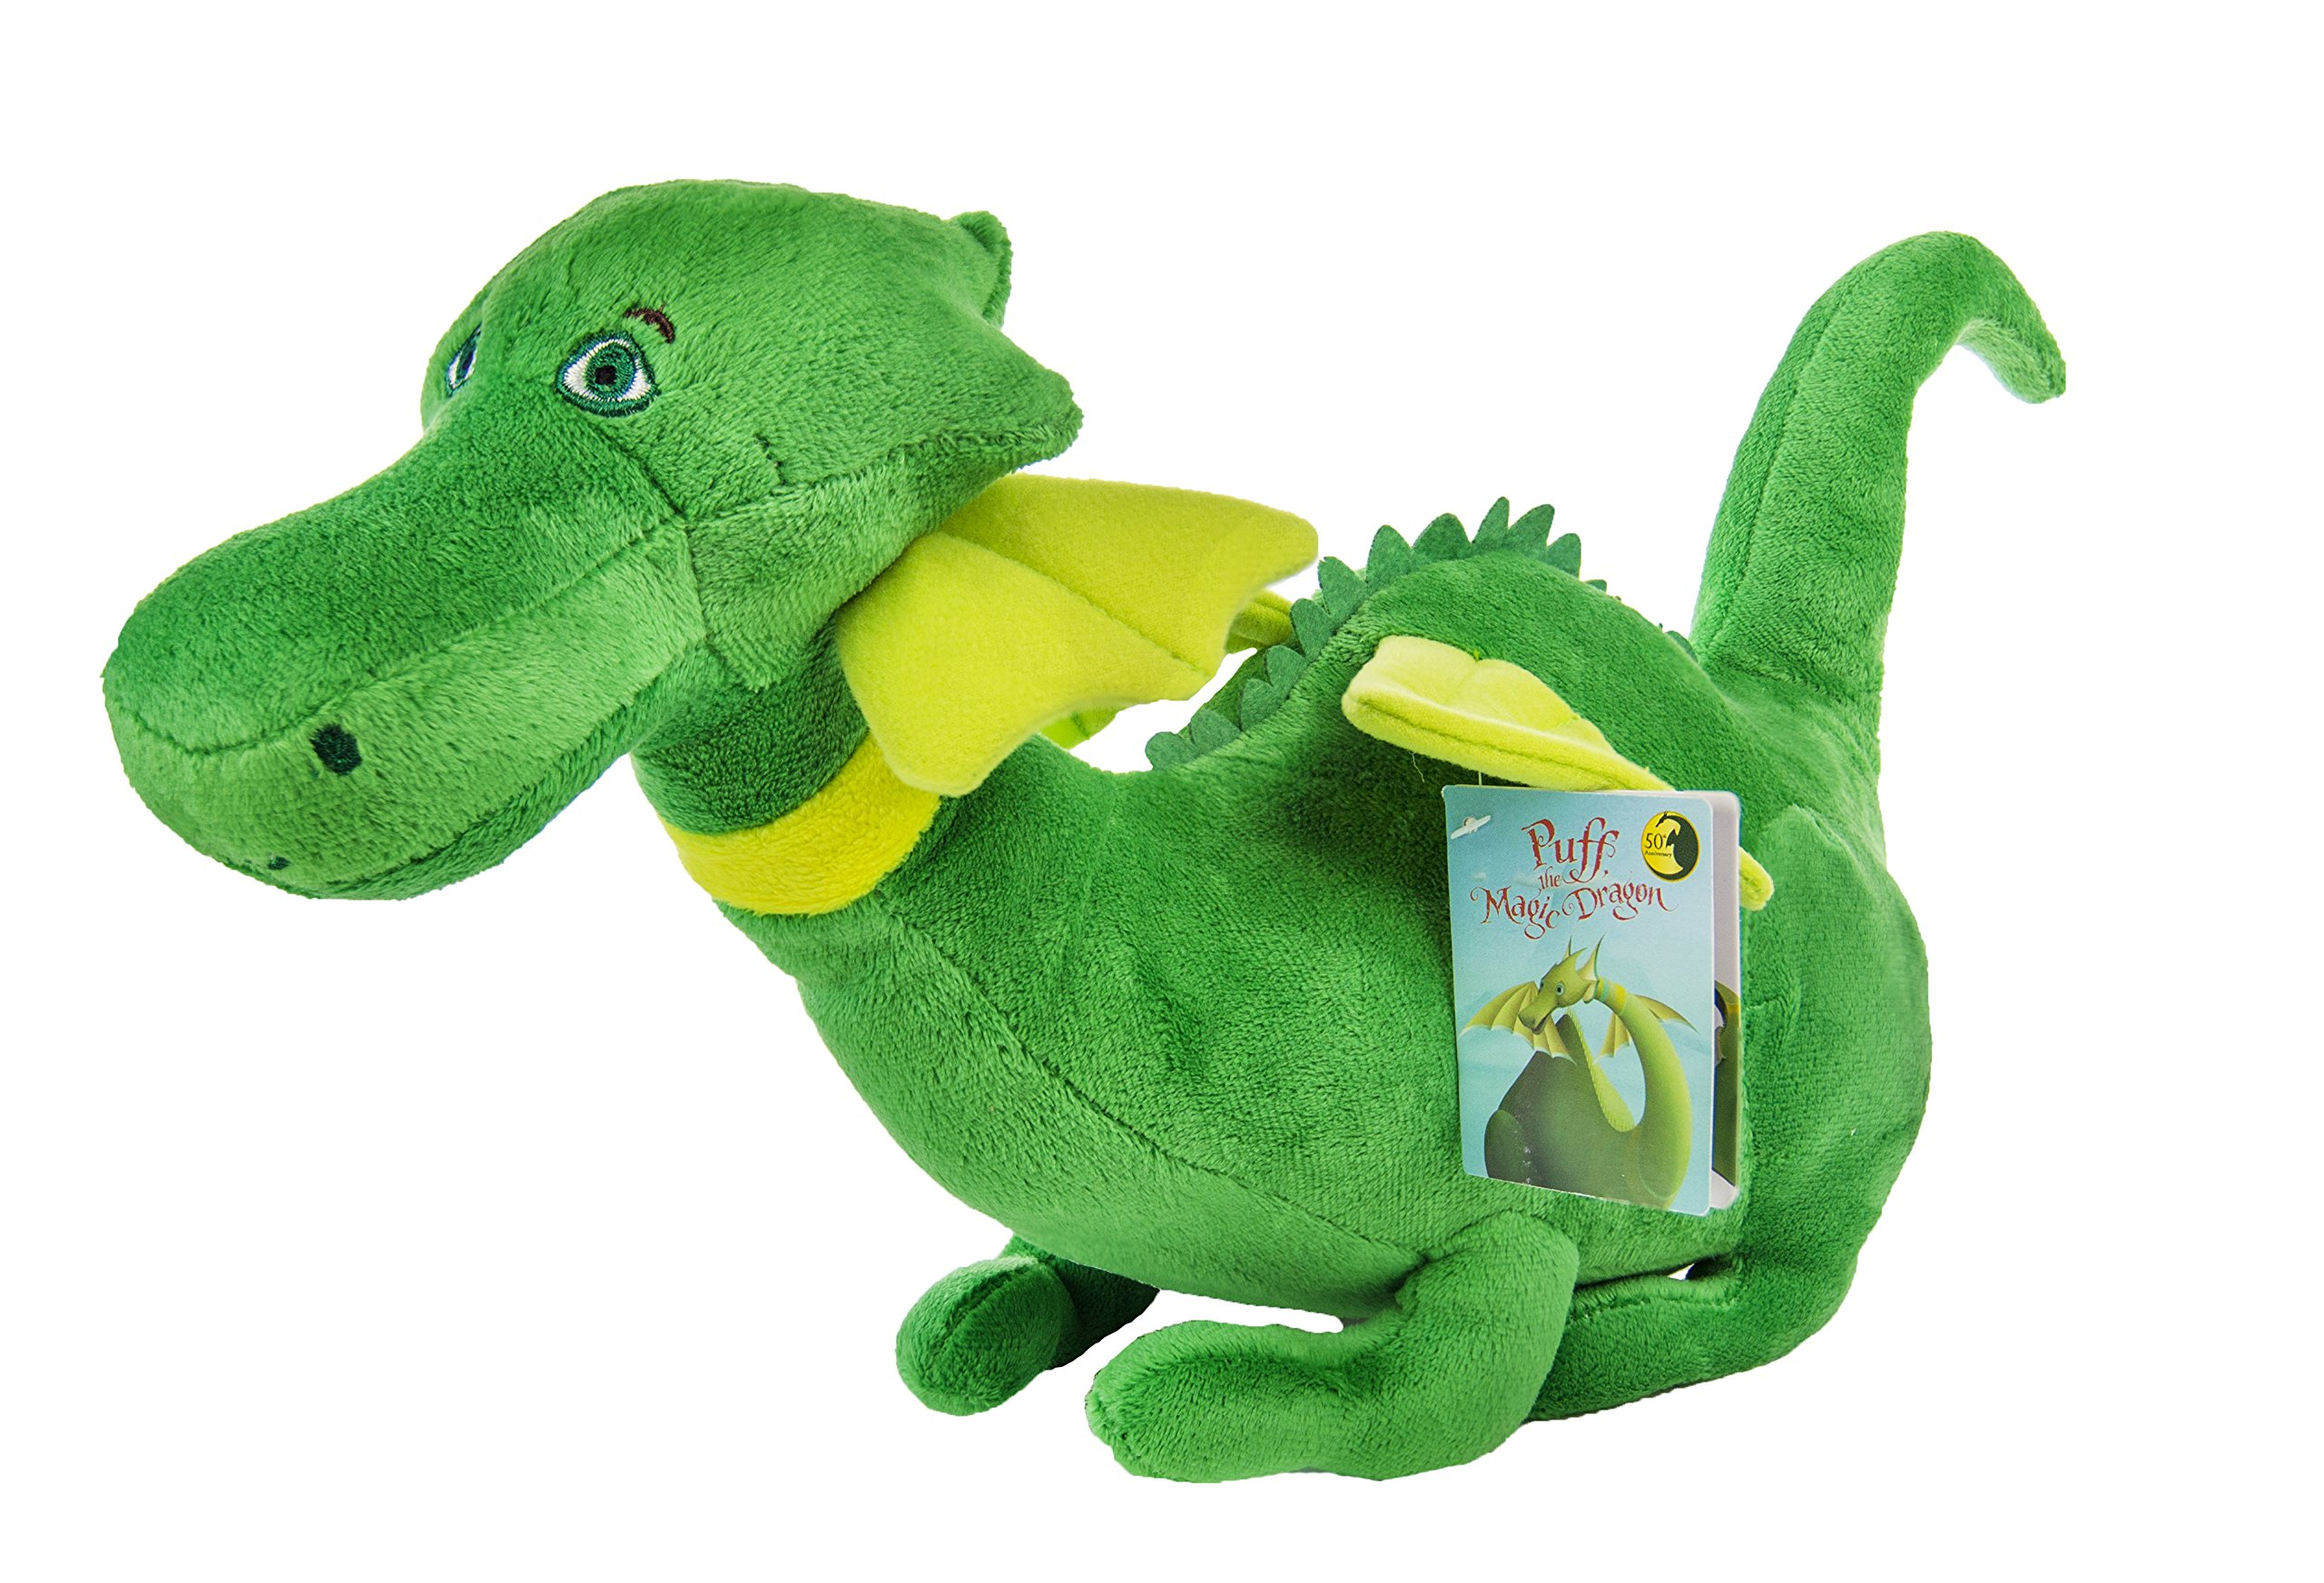 Puff The Magic Dragon Large Plush Toy